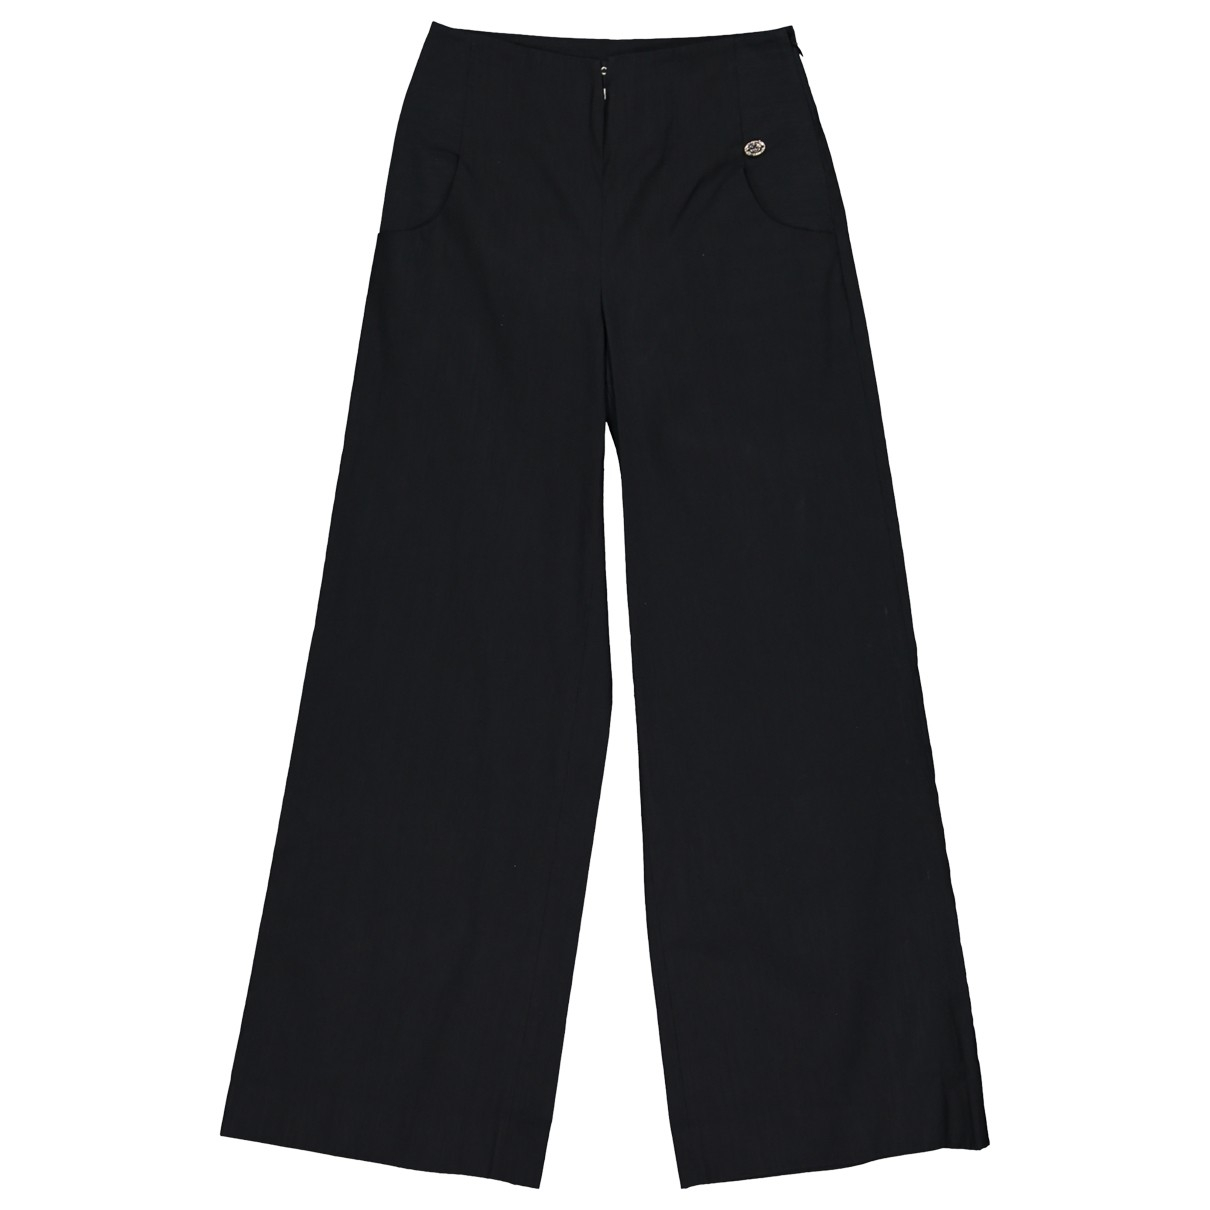 Pantalon largo Chanel